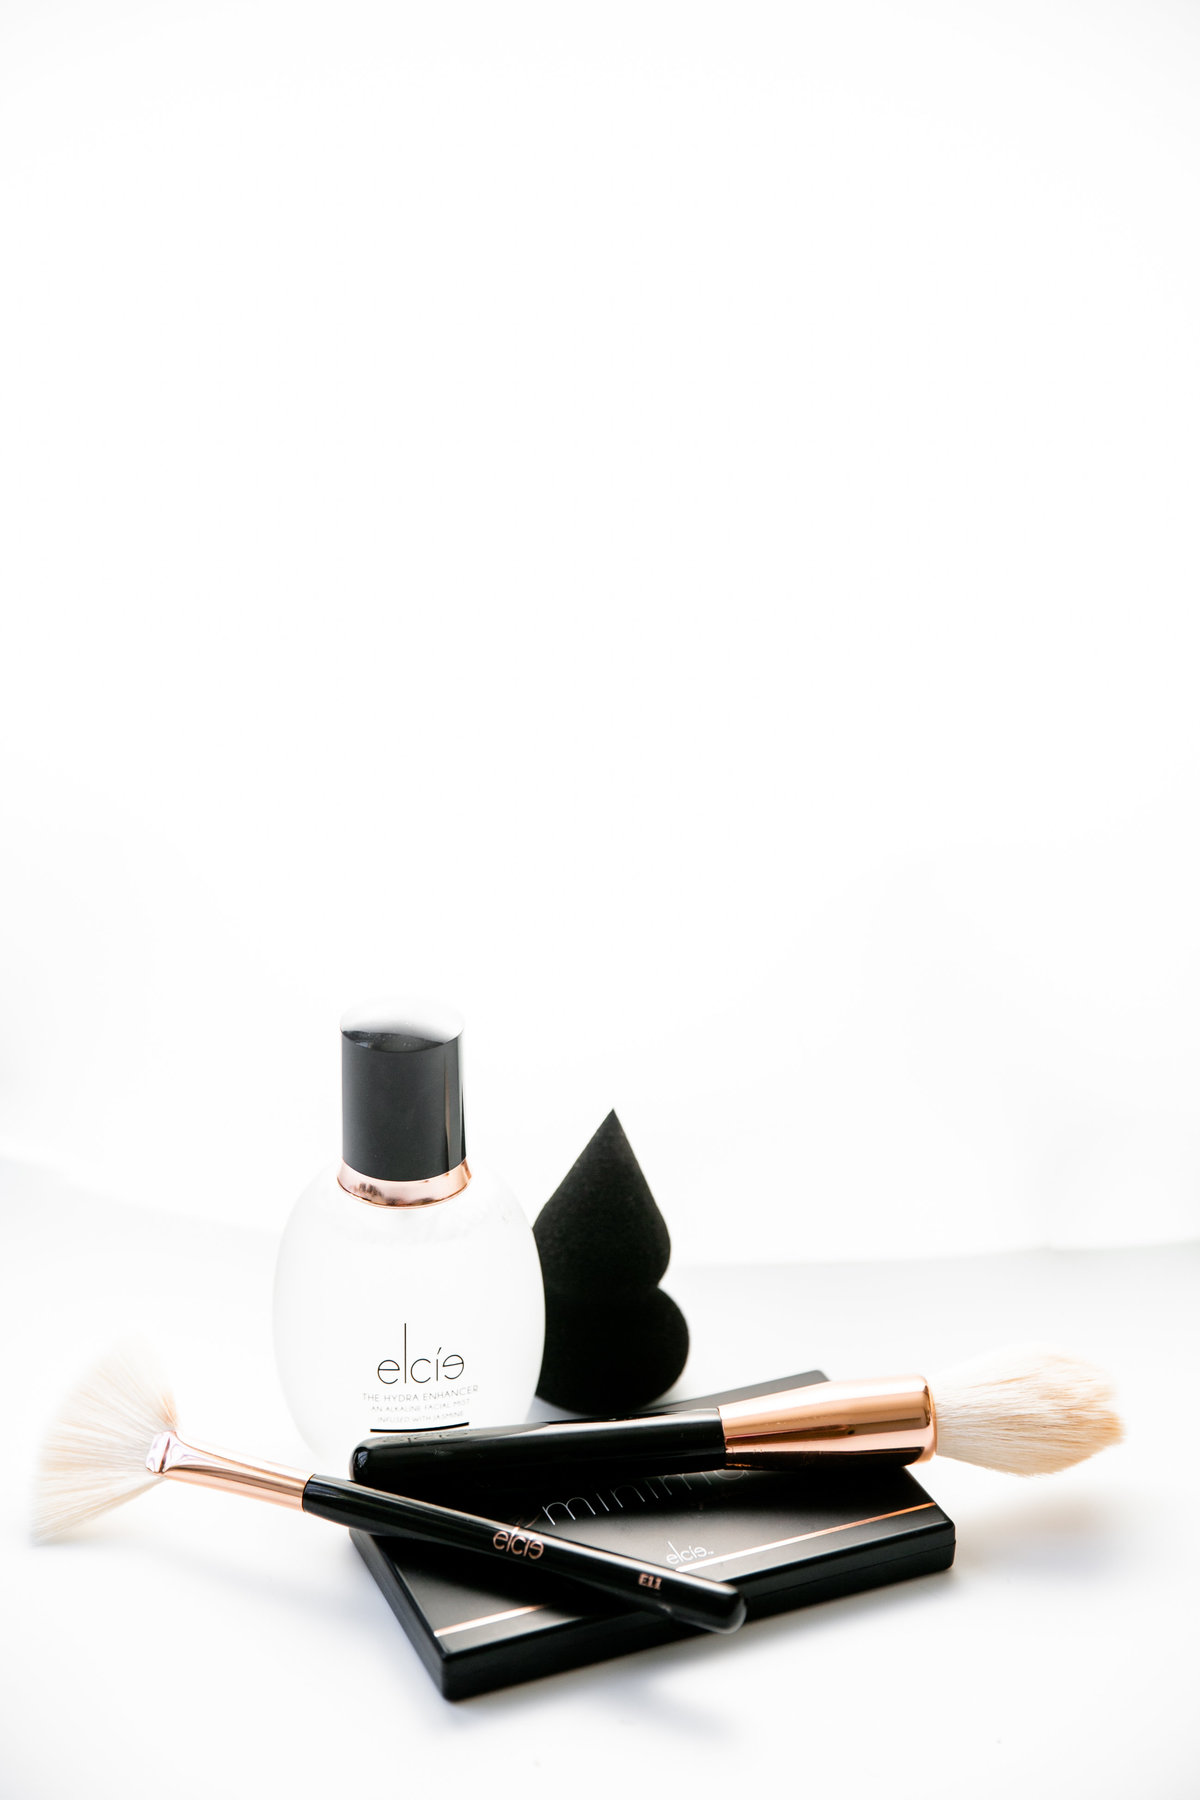 Karlie Colleen Photography - The Daily Concealer -50